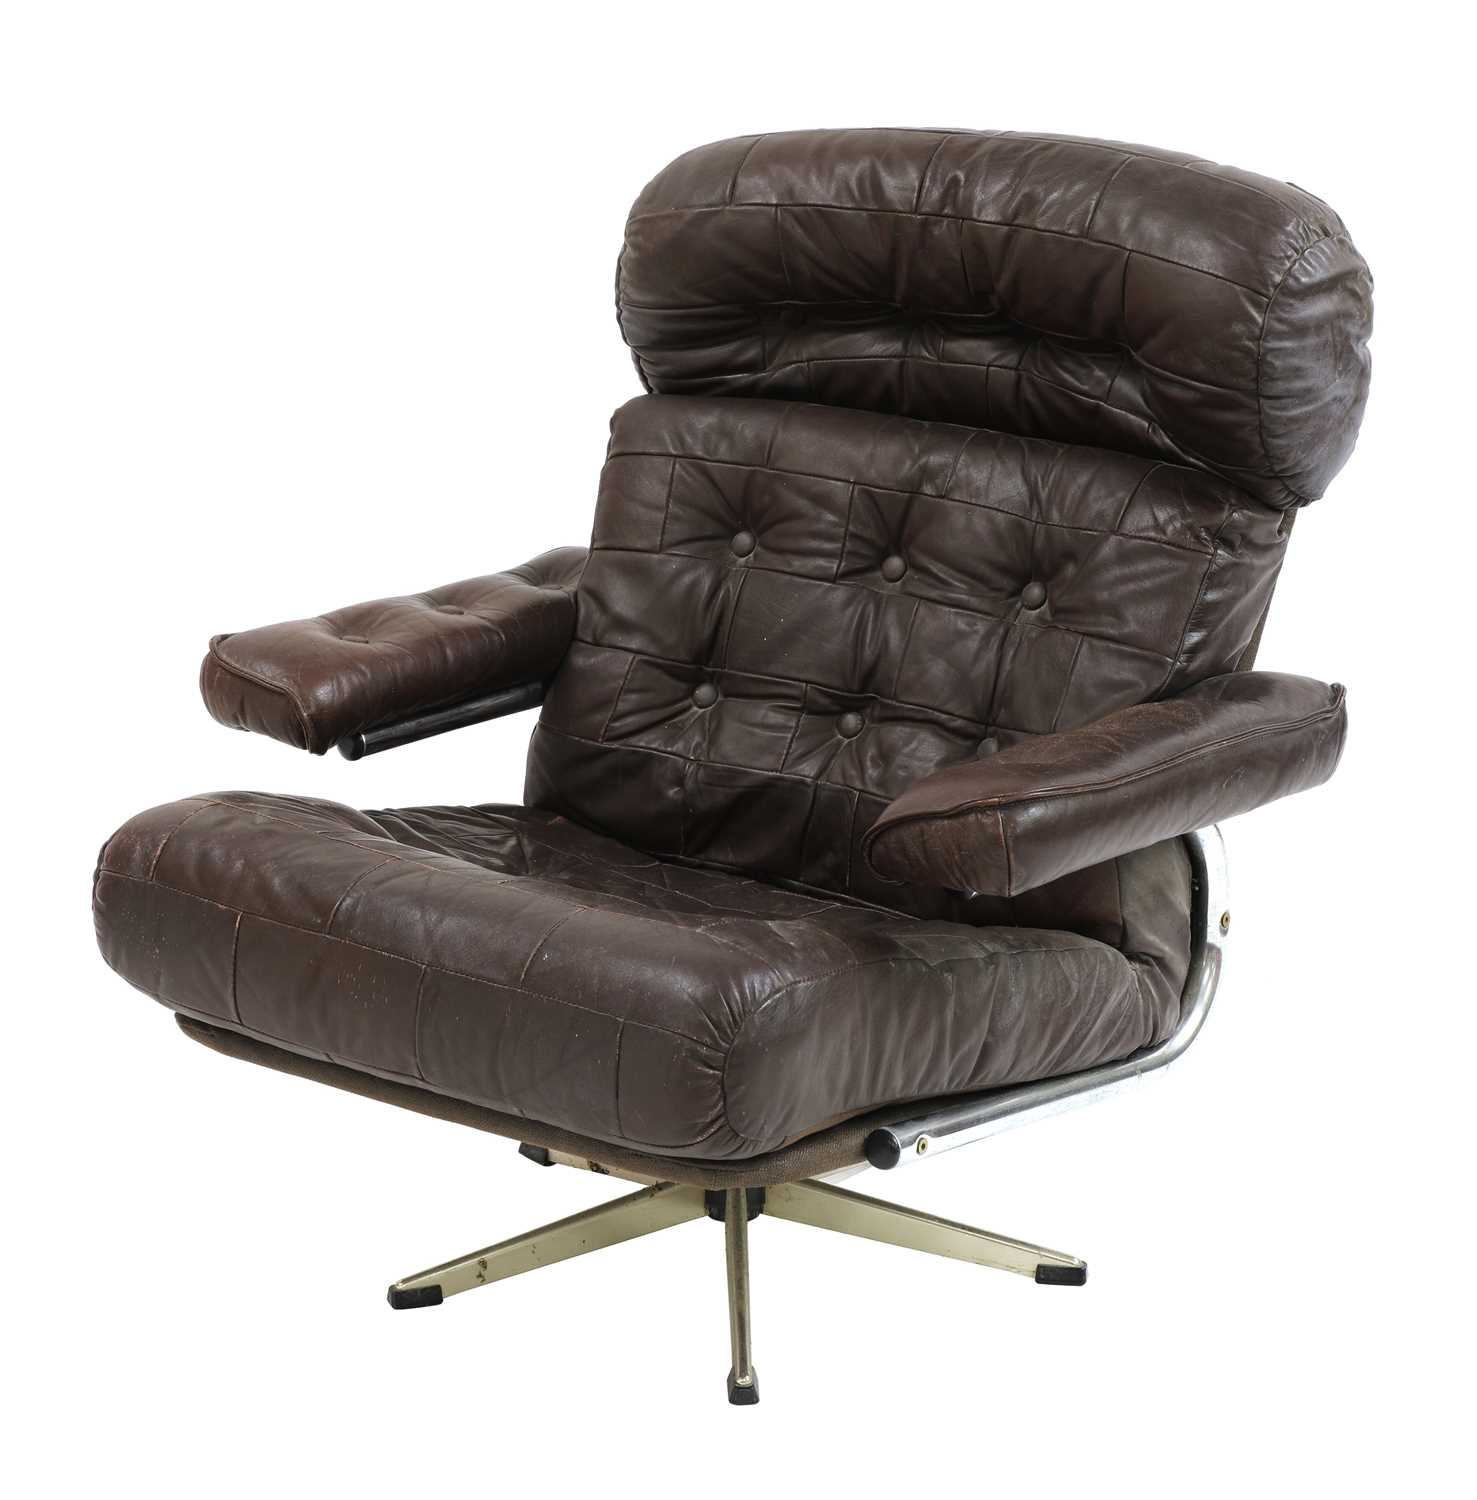 A chocolate leather lounger,